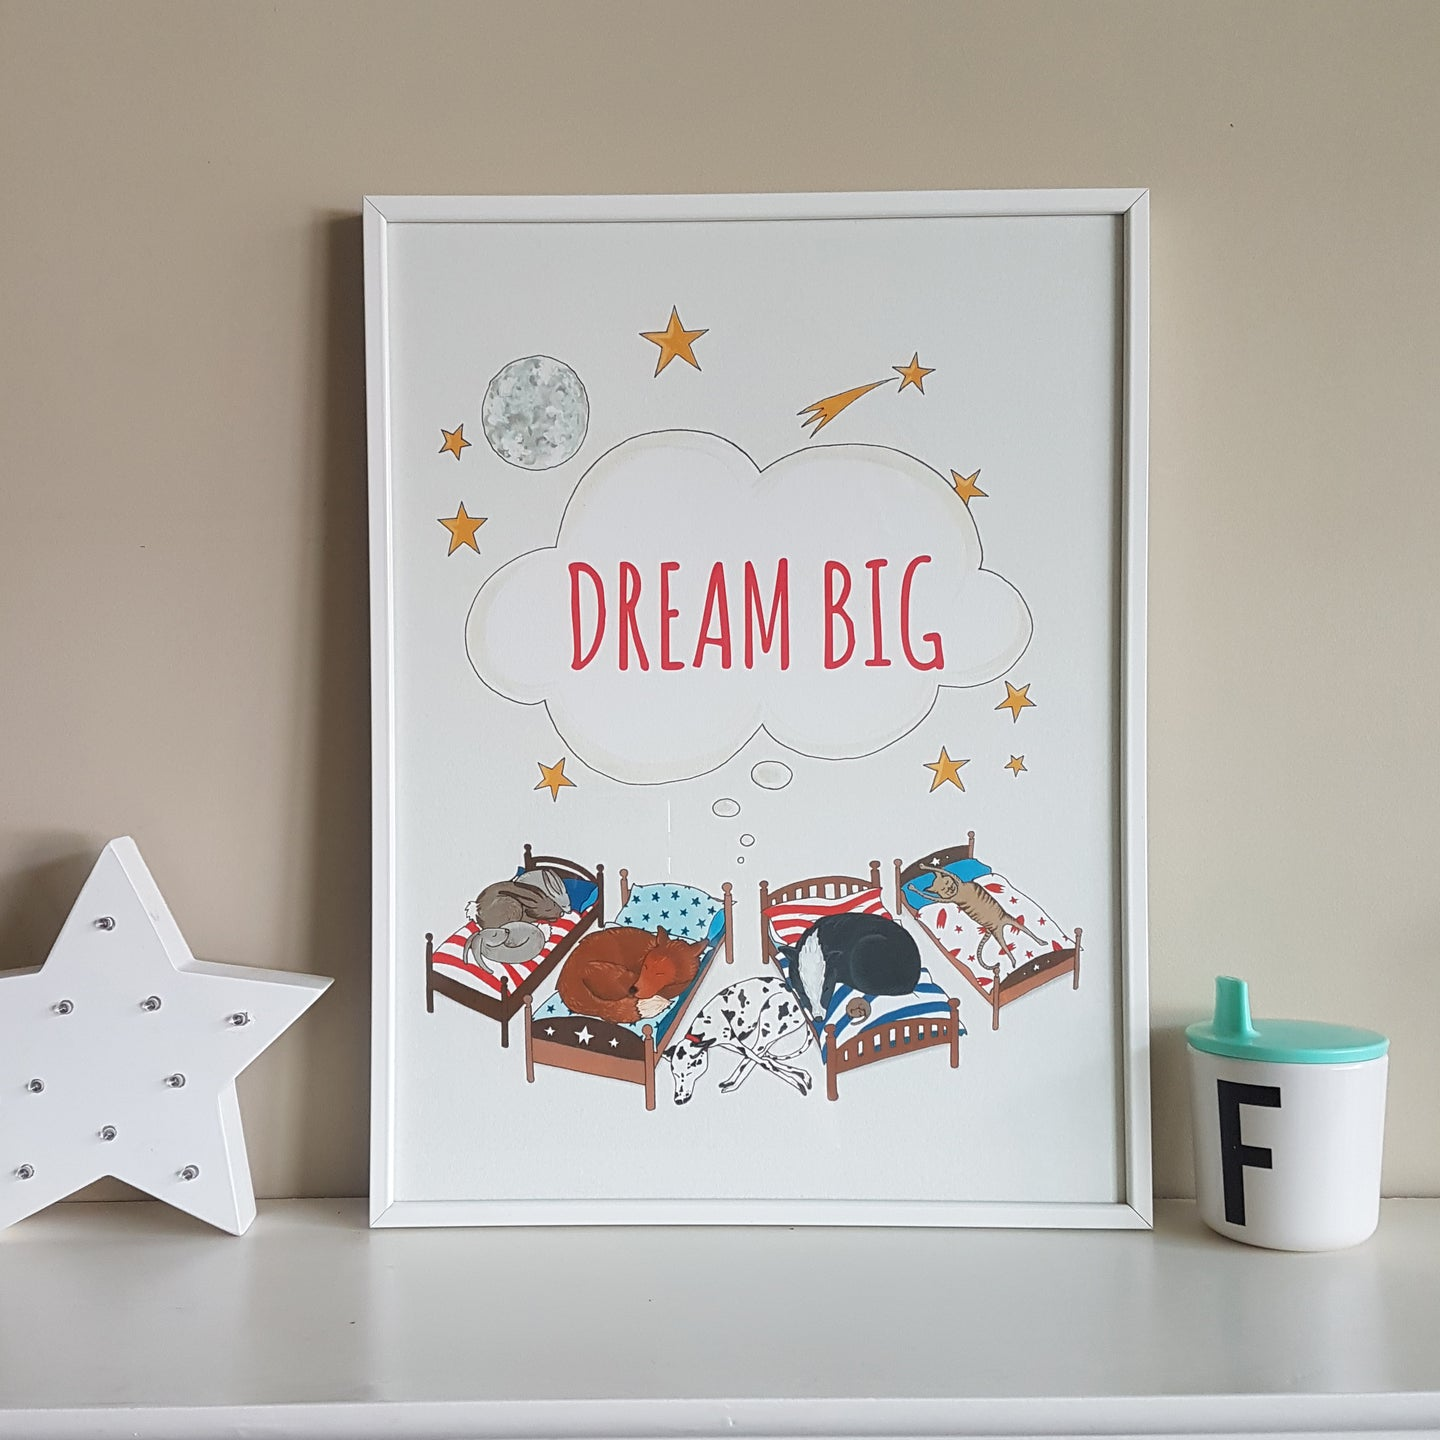 Charming hand illustrated Dream Big animal print